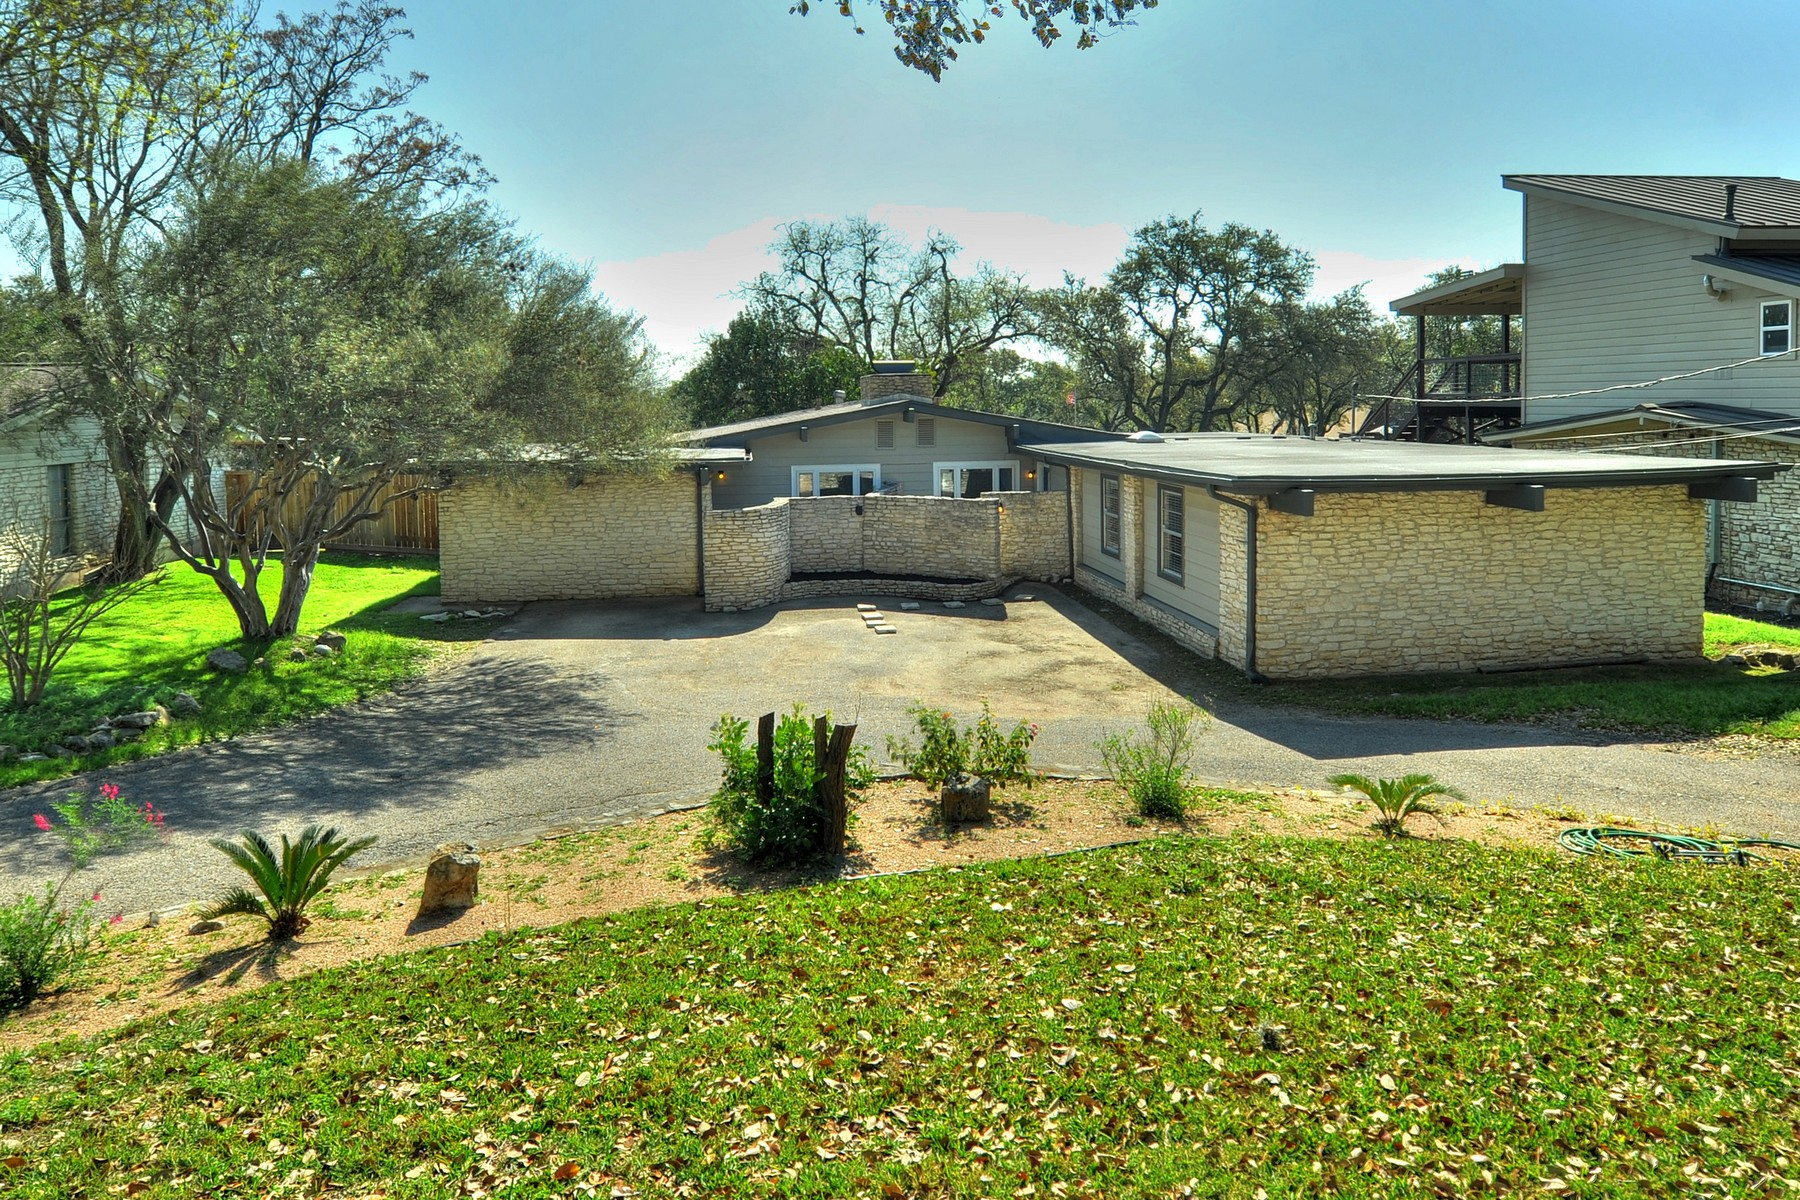 Single Family Home for Sale at Unique Investor Opportunity in Westlake Hills 109 Westhaven Dr Austin, Texas 78746 United States